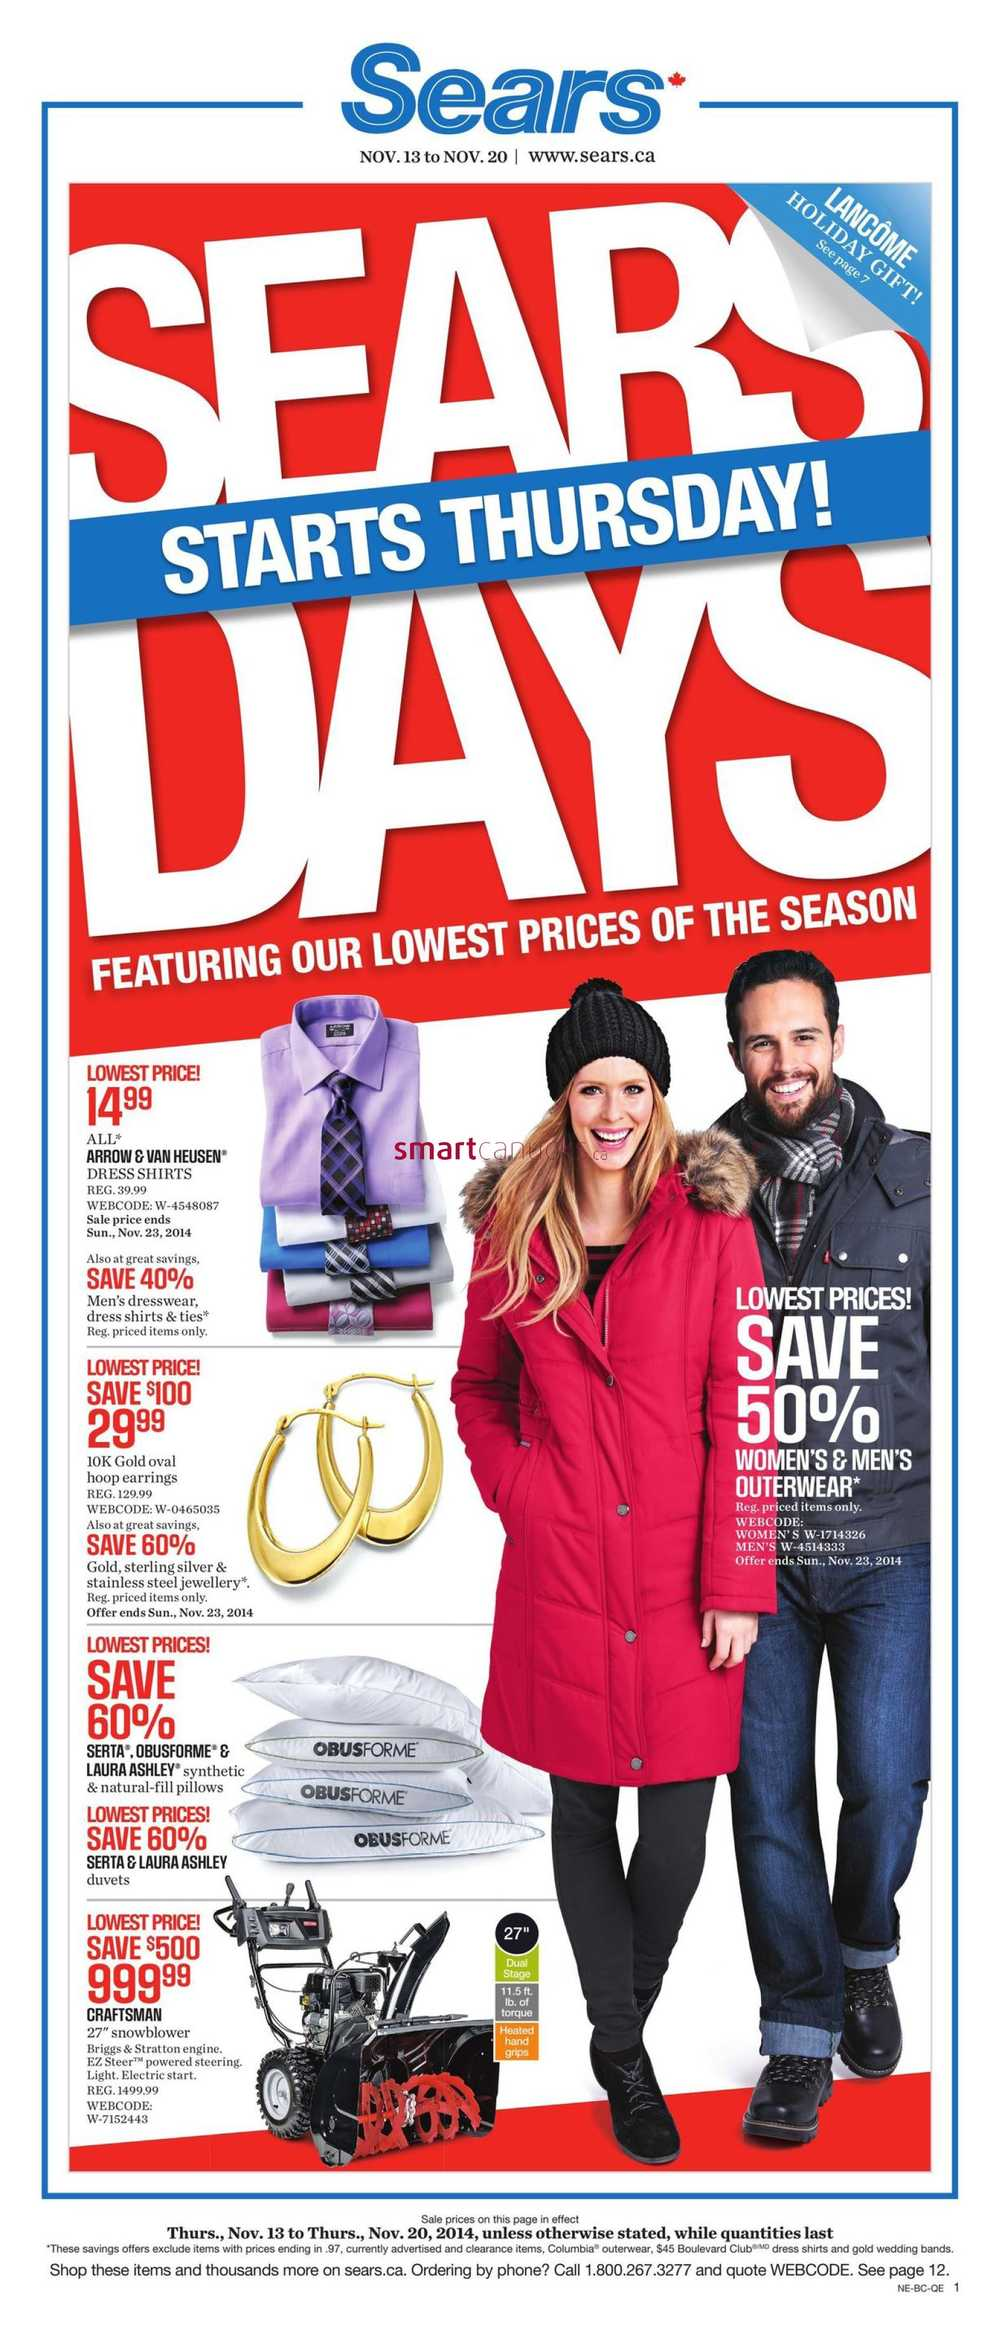 Sears Flyer Online – Canadian Store Flyers Your favorite online Canadian flyers, your favorite stores, updated regularly for you to browse easily. Find all the deals & .